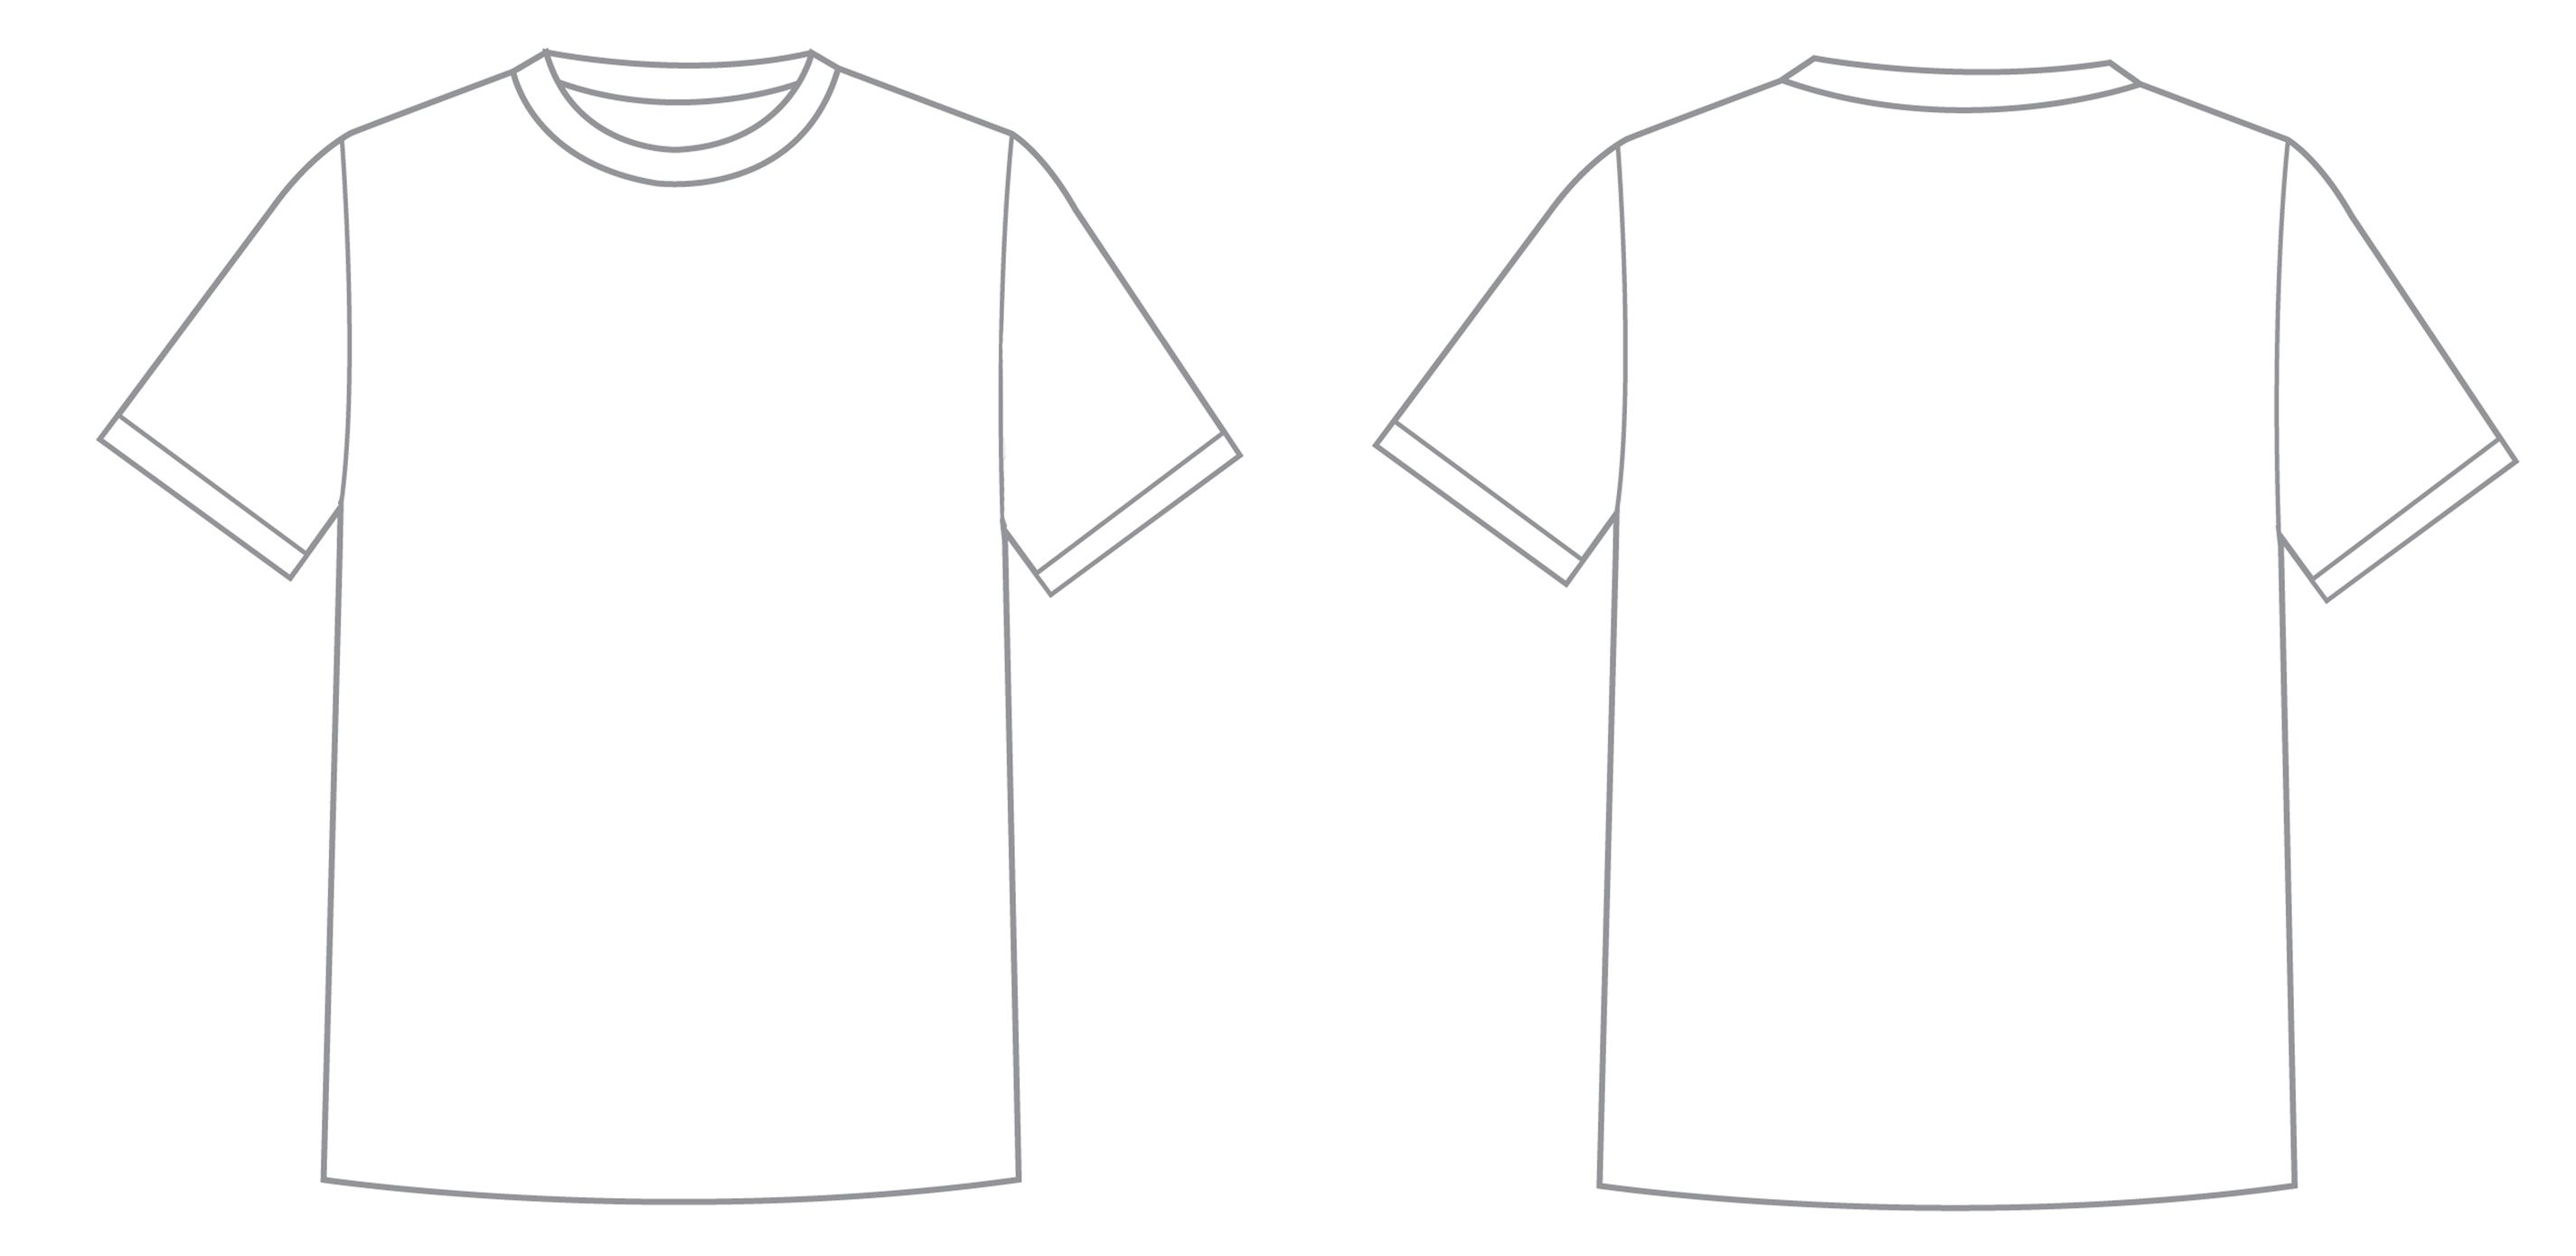 T Shirt Templates | T Shirt Template Google Search Comedy Shirt Template Shirts